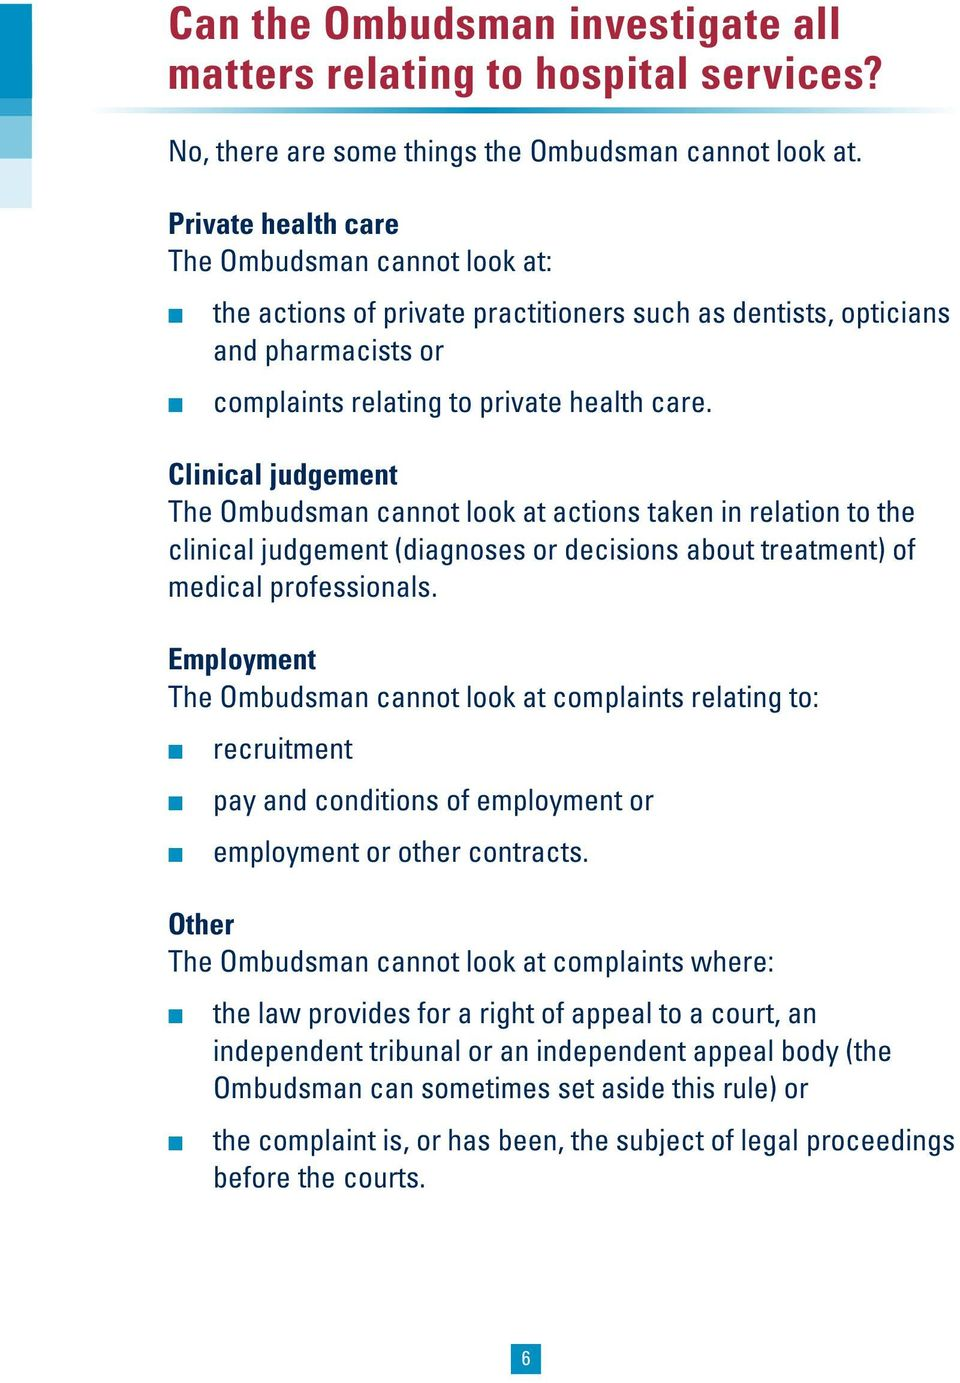 Clinical judgement The Ombudsman cannot look at actions taken in relation to the clinical judgement (diagnoses or decisions about treatment) of medical professionals.